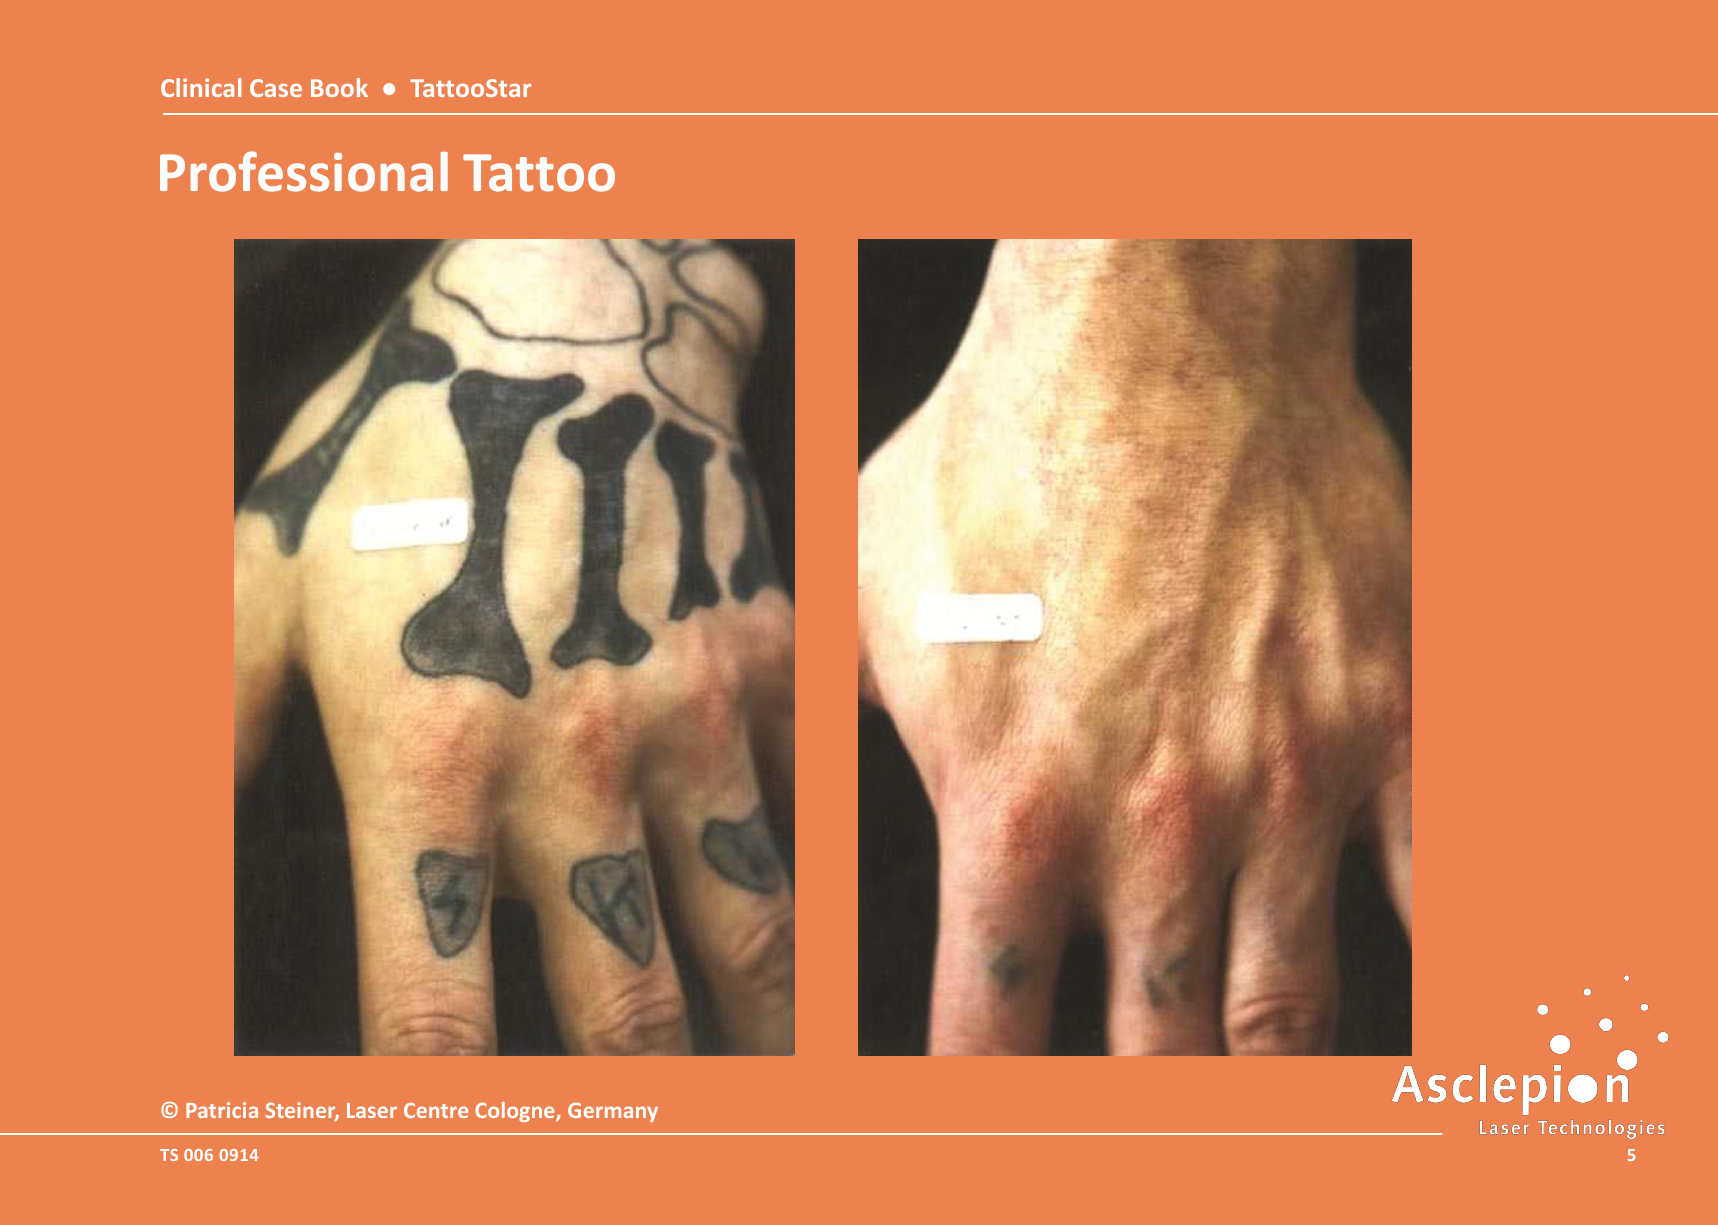 Clinical-Case-Book-2014-TattooStar_09145